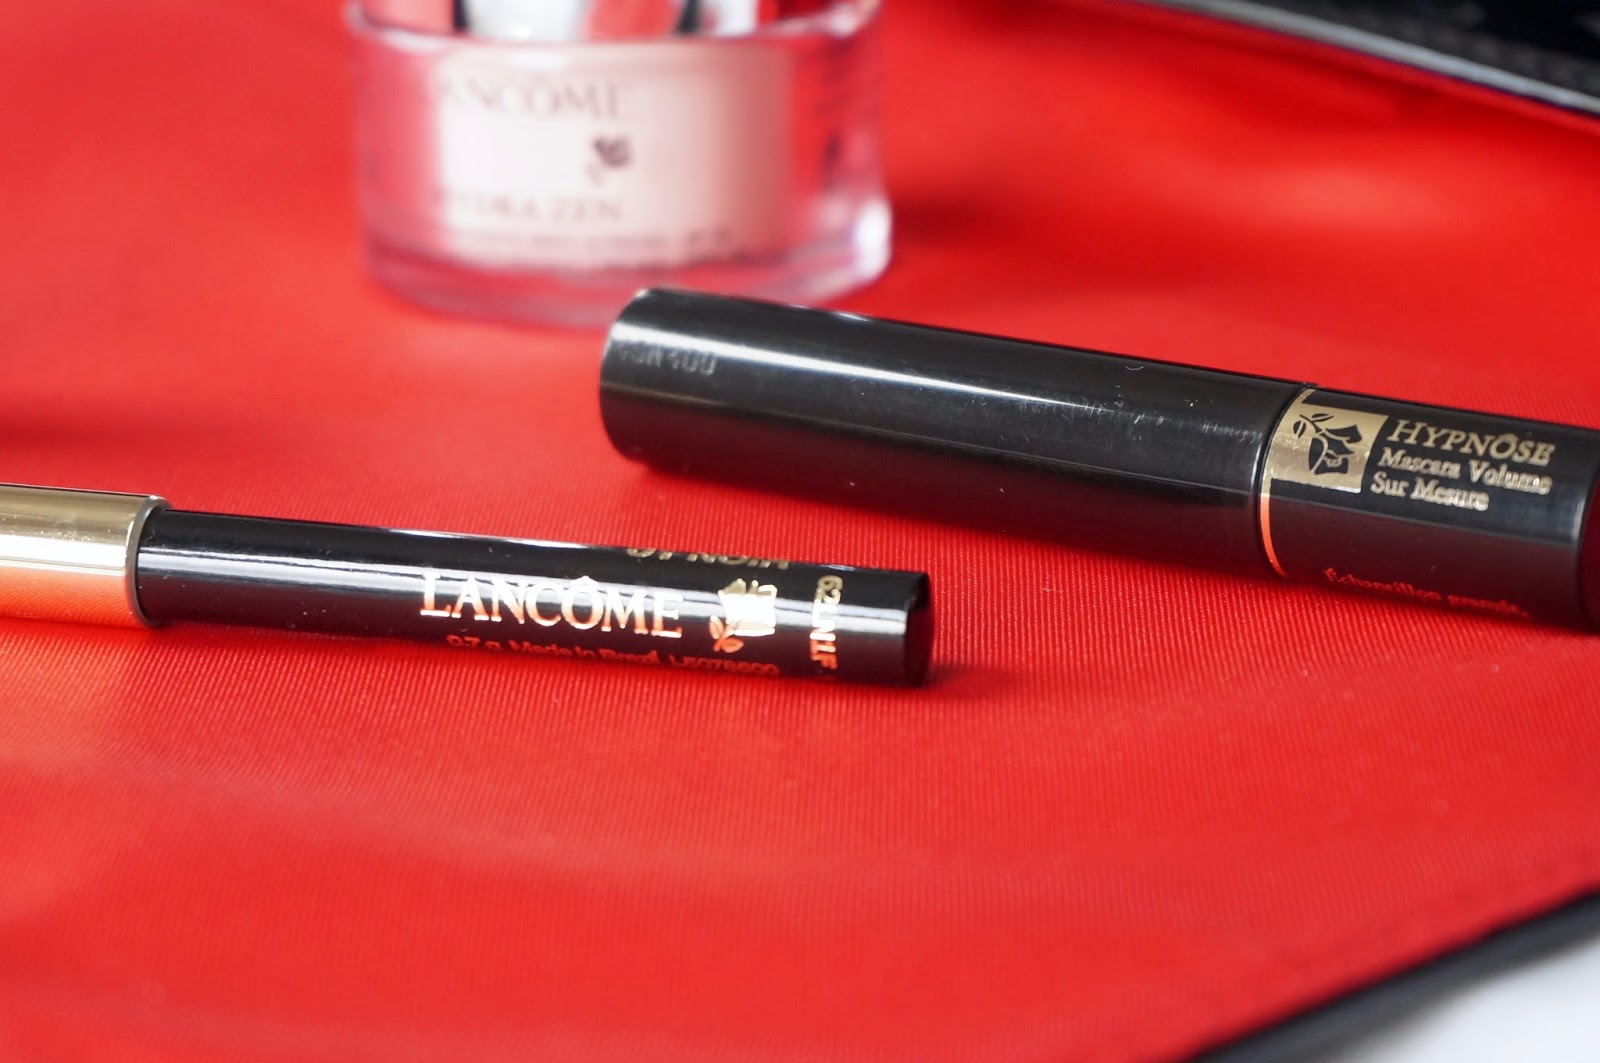 Lancome gift with purchase Debenhams